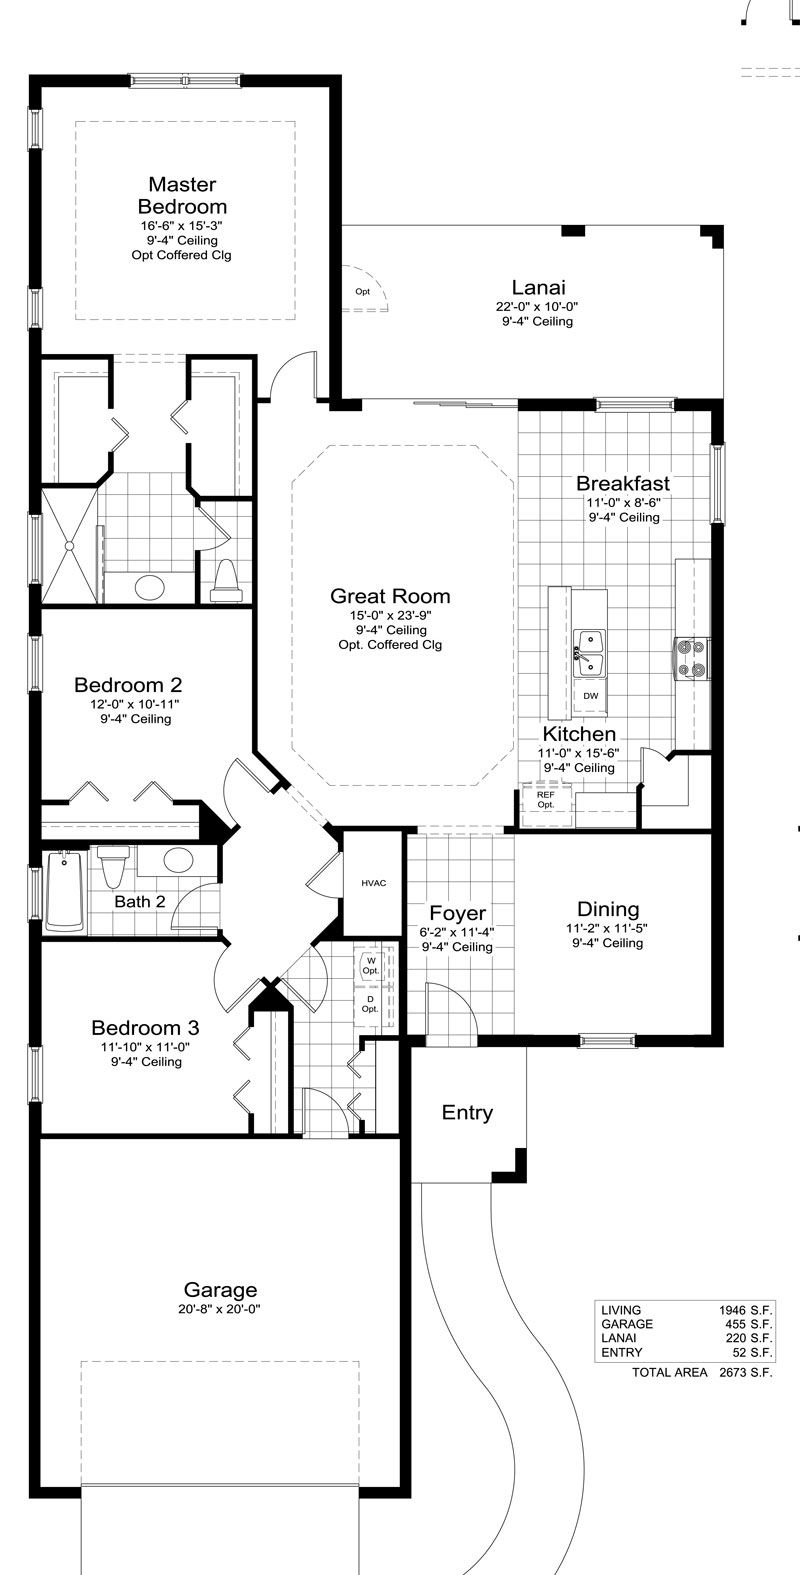 White sand 2 home plan by neal communities in silverleaf for Ron lee homes floor plans